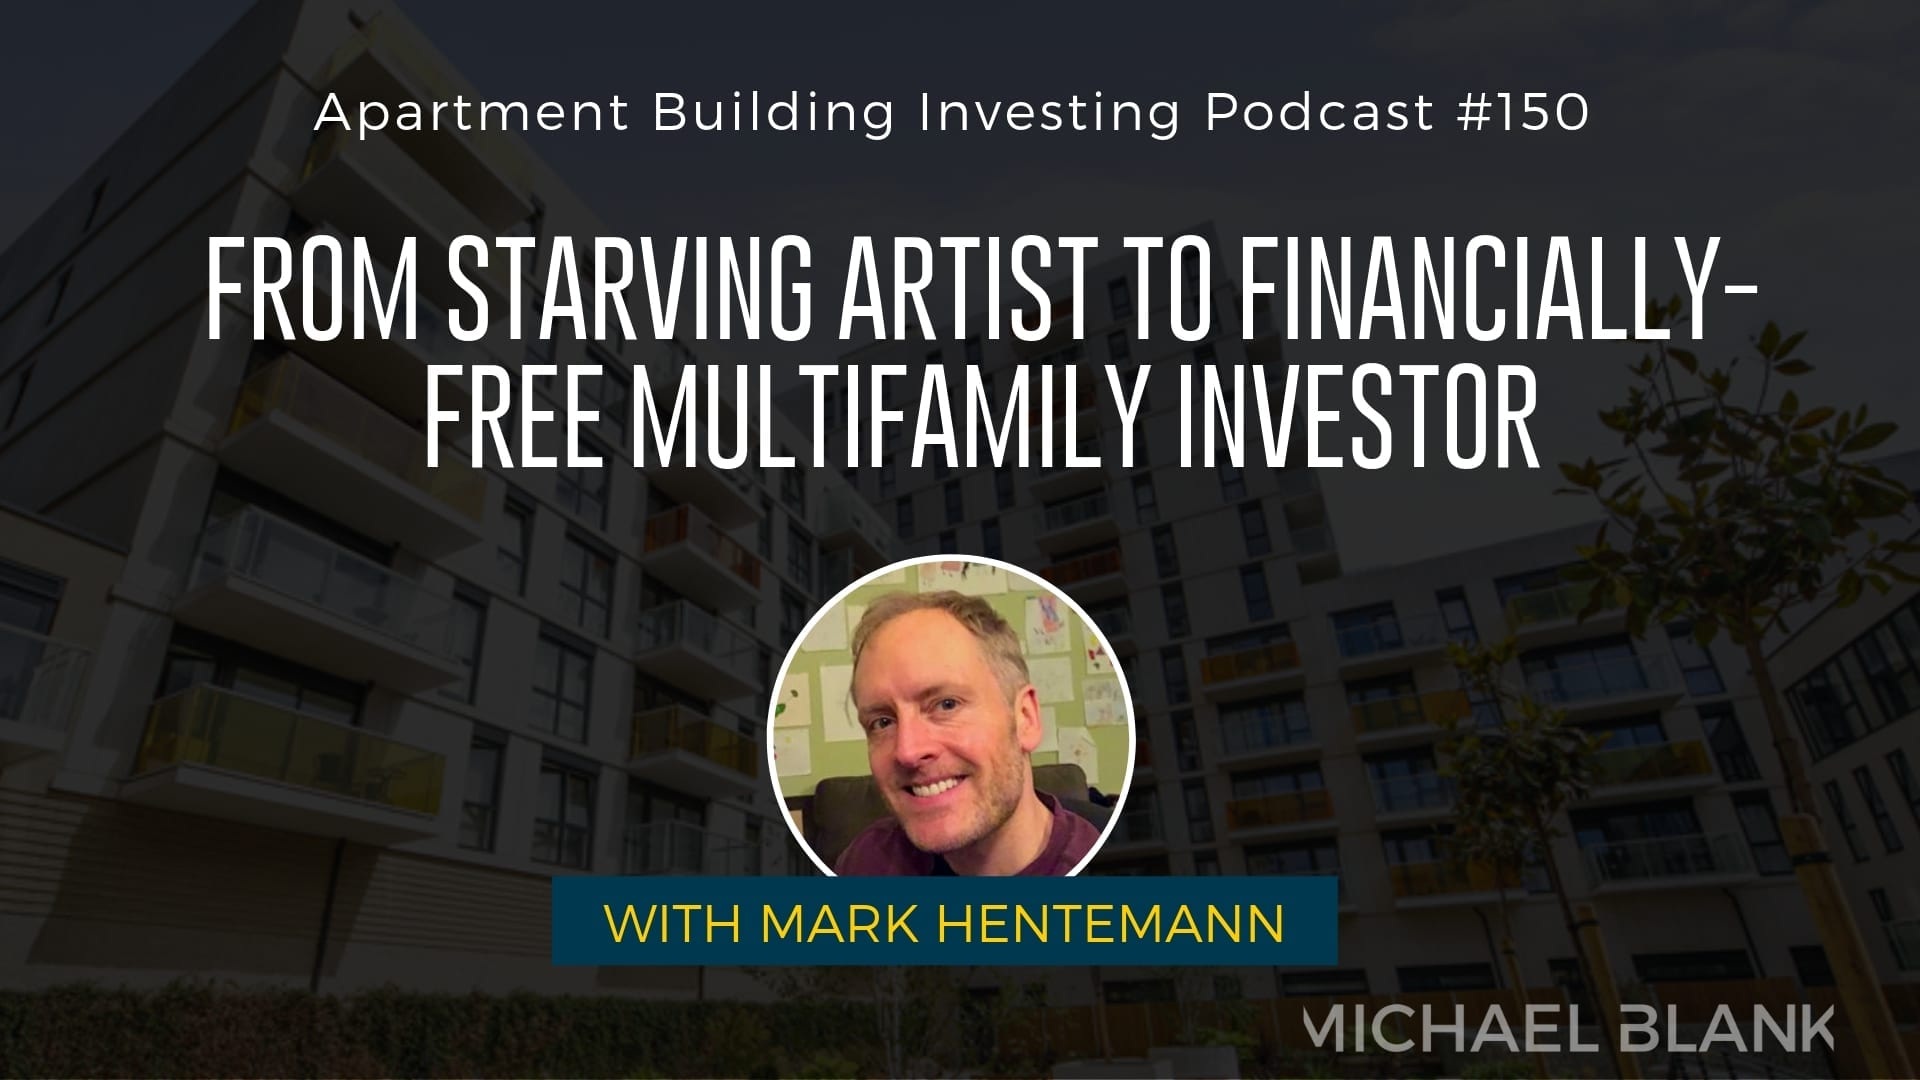 MB 150: From Starving Artist to Financially-Free Multifamily Investor – With Mark Hentemann